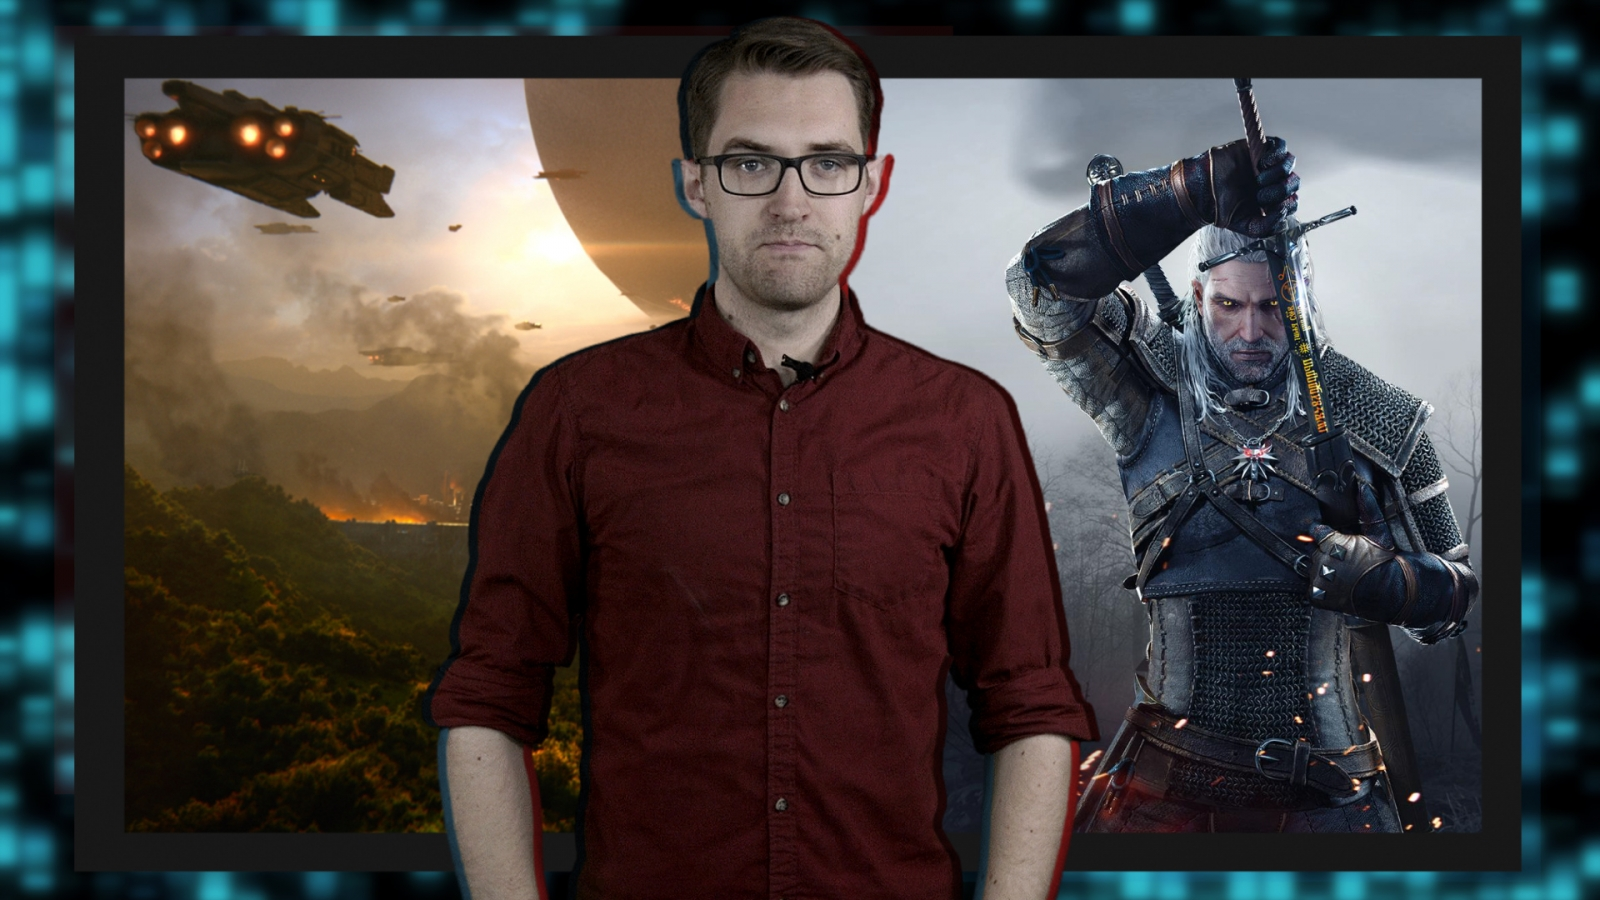 Video game news round-up: Assassin's Creed, Far Cry 5, The Witcher on Netflix & Destiny 2